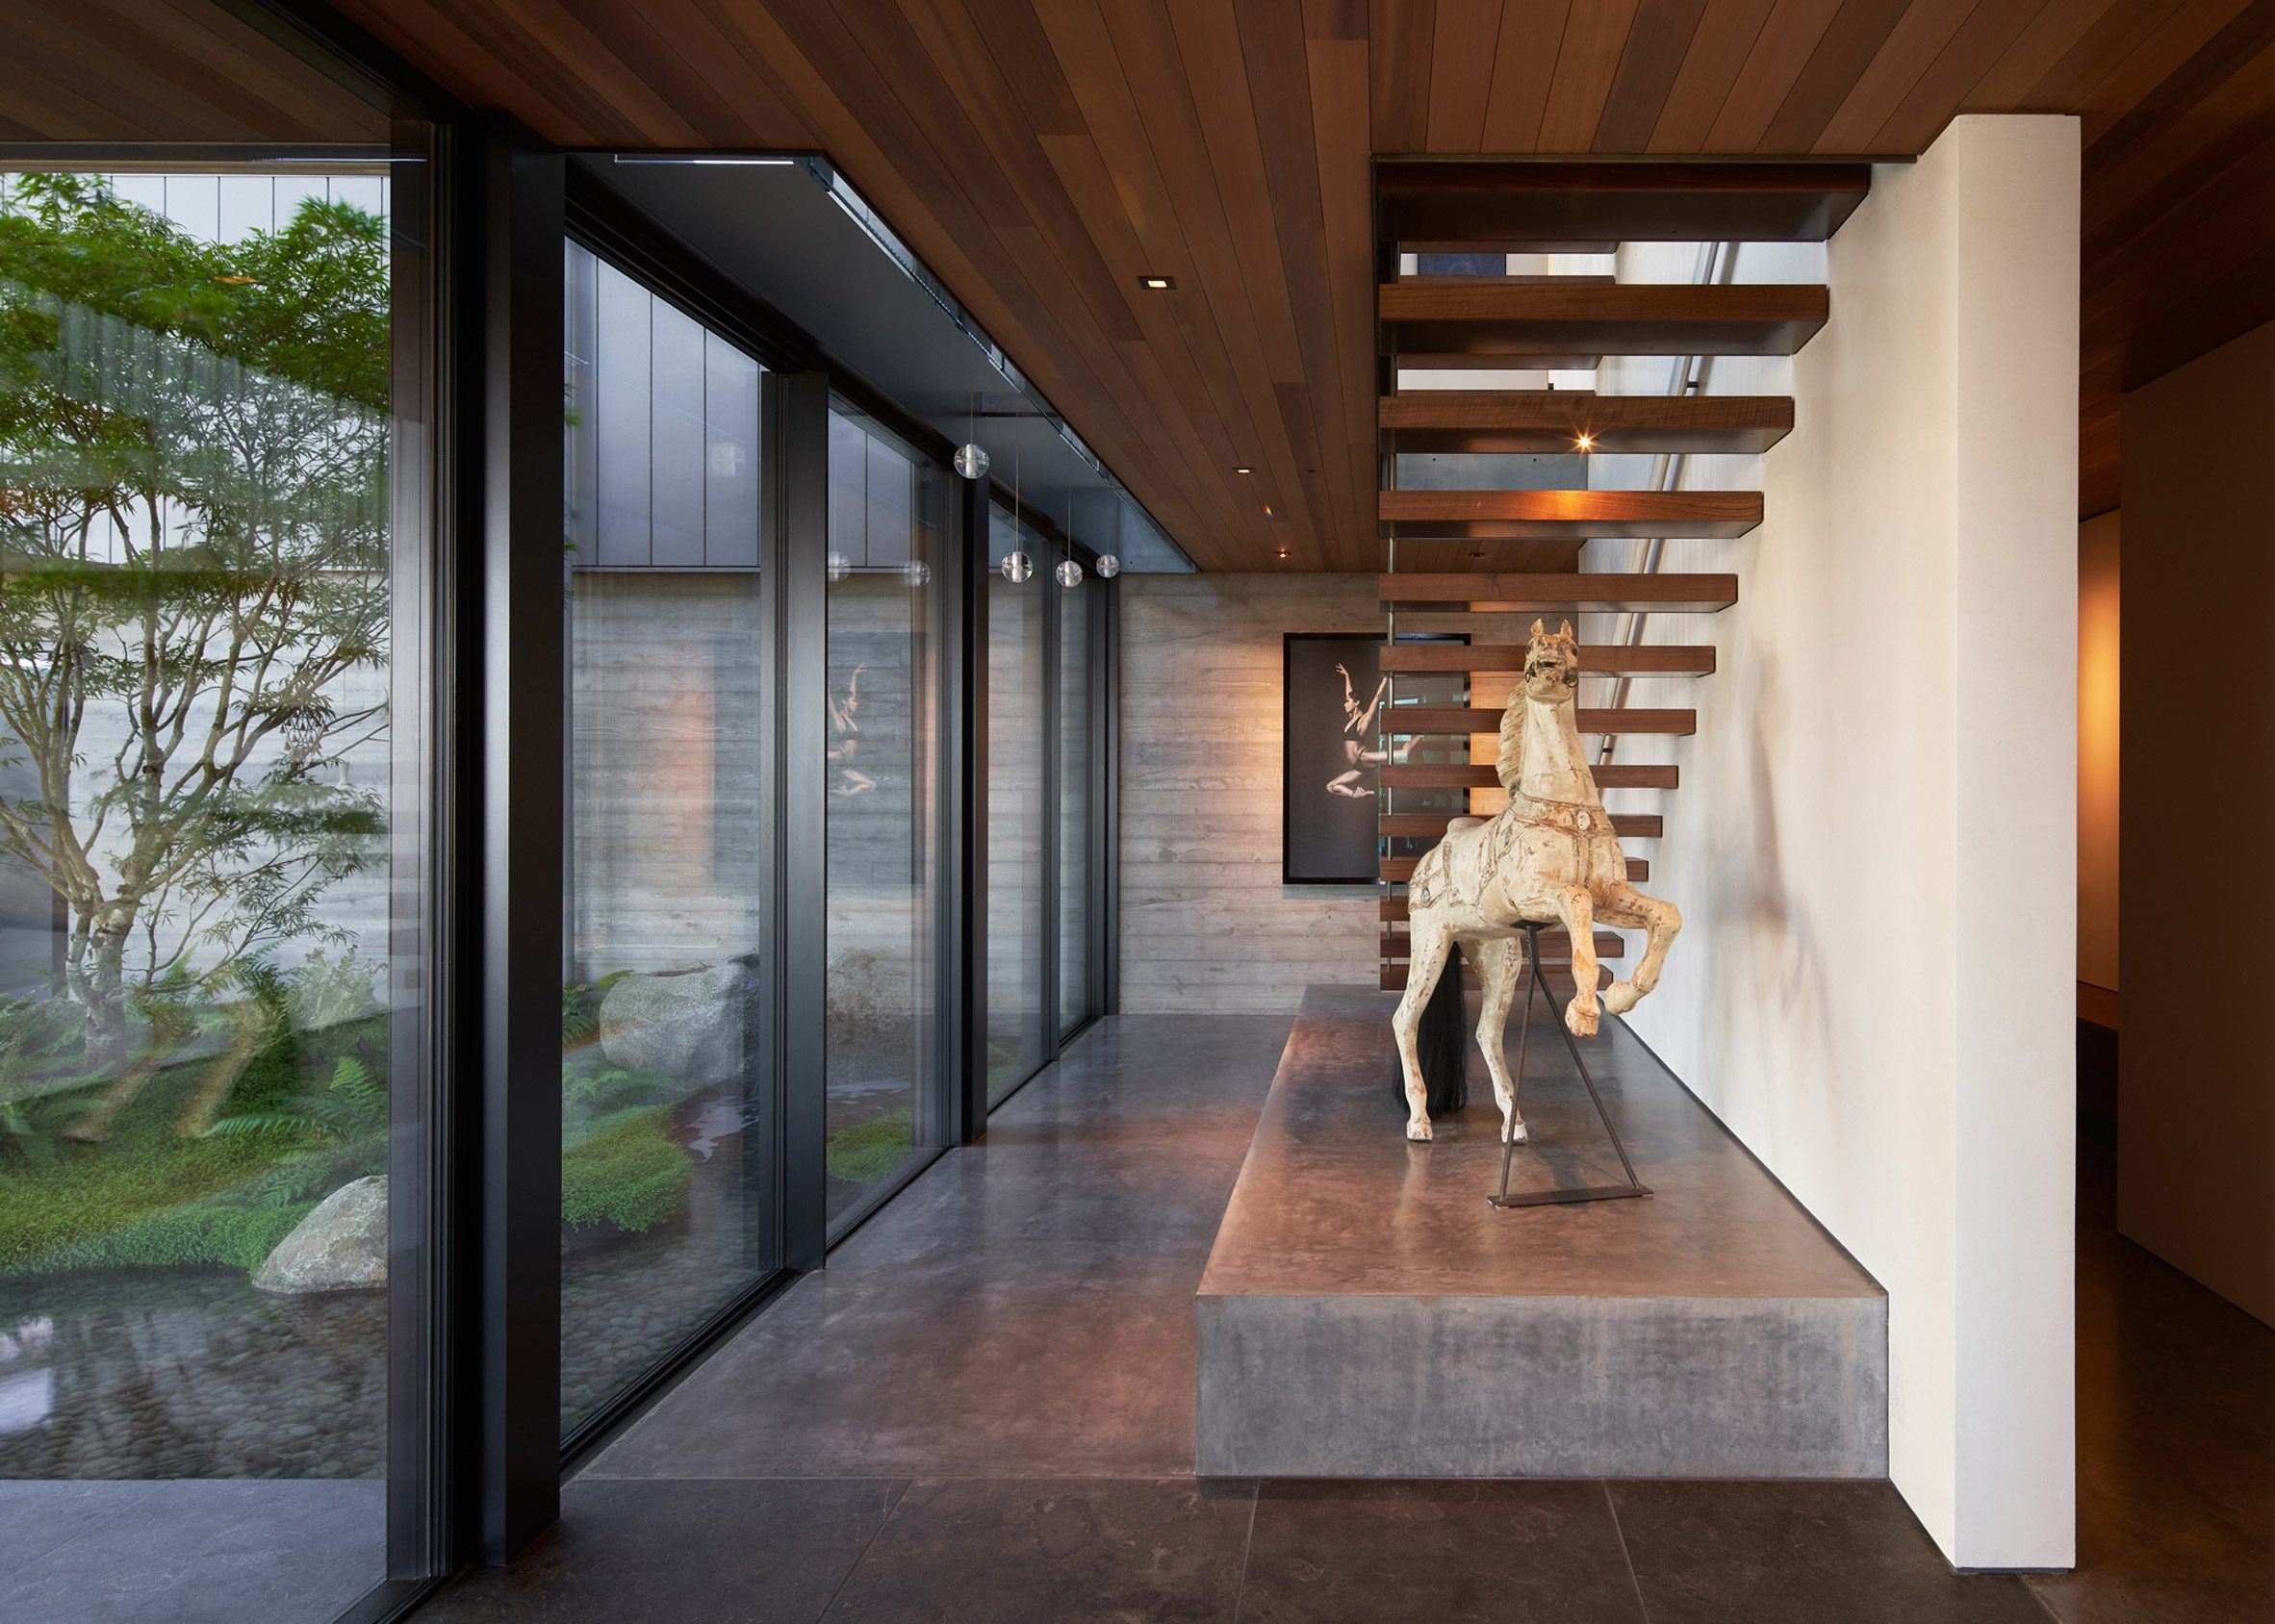 Chadbourne + Doss Architects designed the project